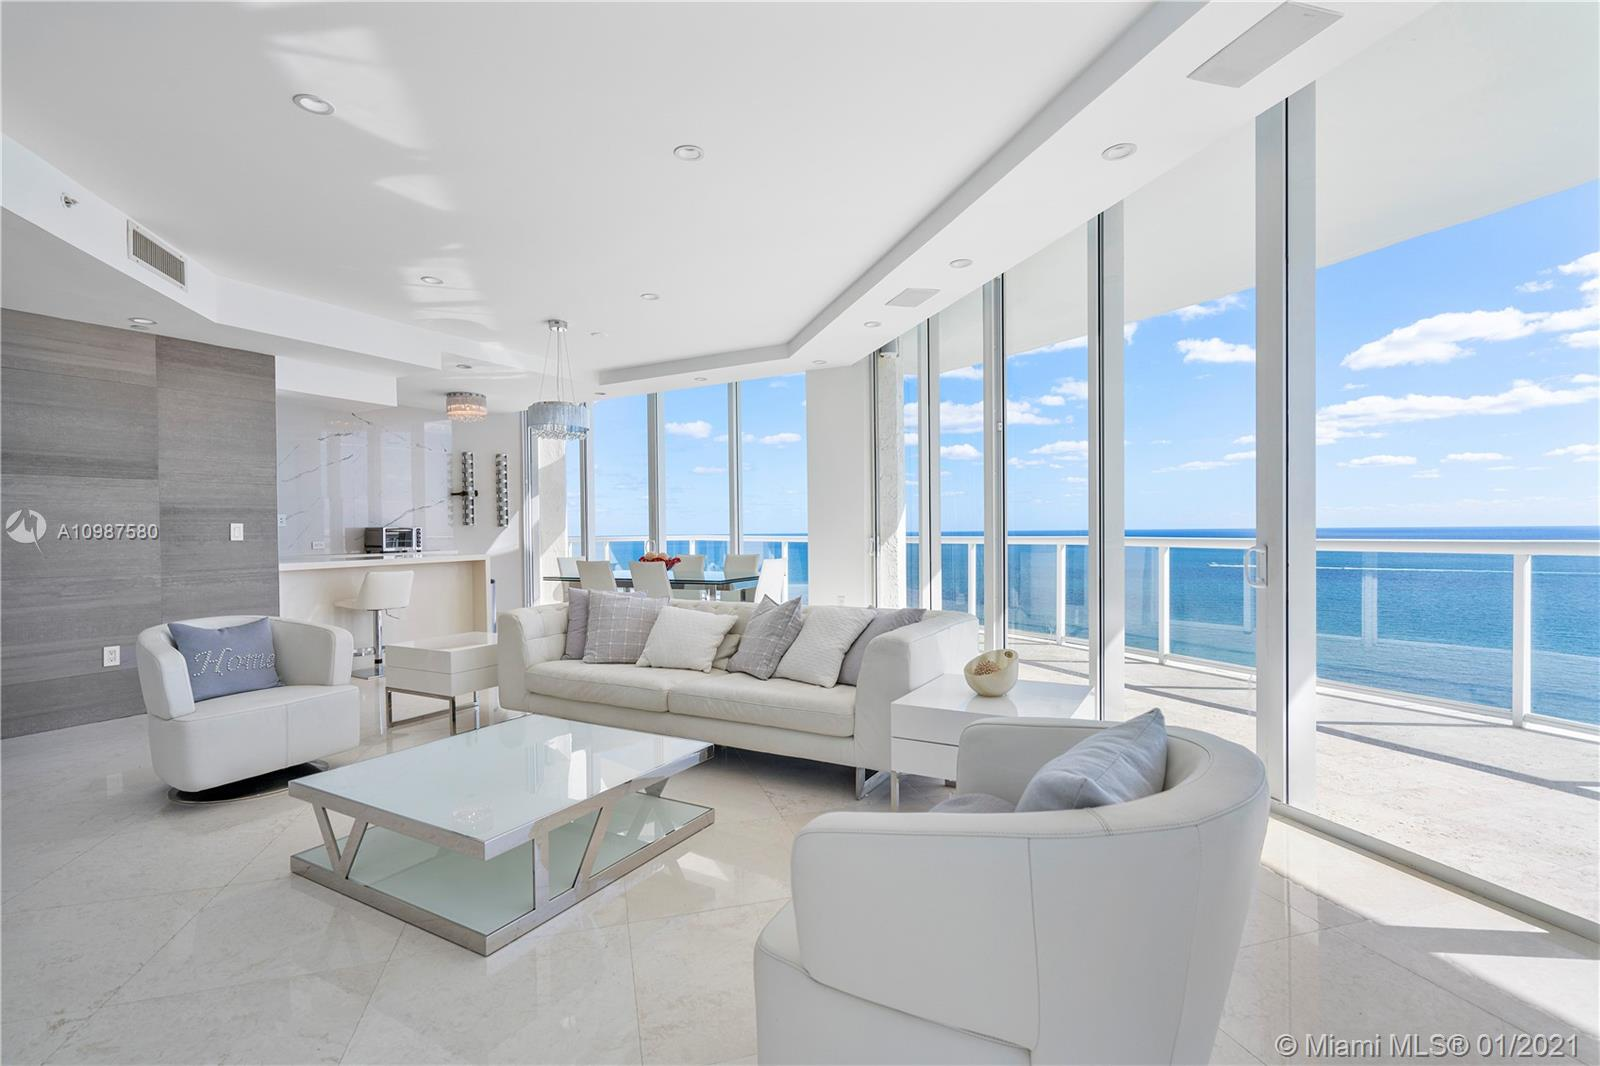 18671 Collins Ave, Sunny Isles Beach, Florida 33160, 4 Bedrooms Bedrooms, ,5 BathroomsBathrooms,Residential,For Sale,18671 Collins Ave,A10987580